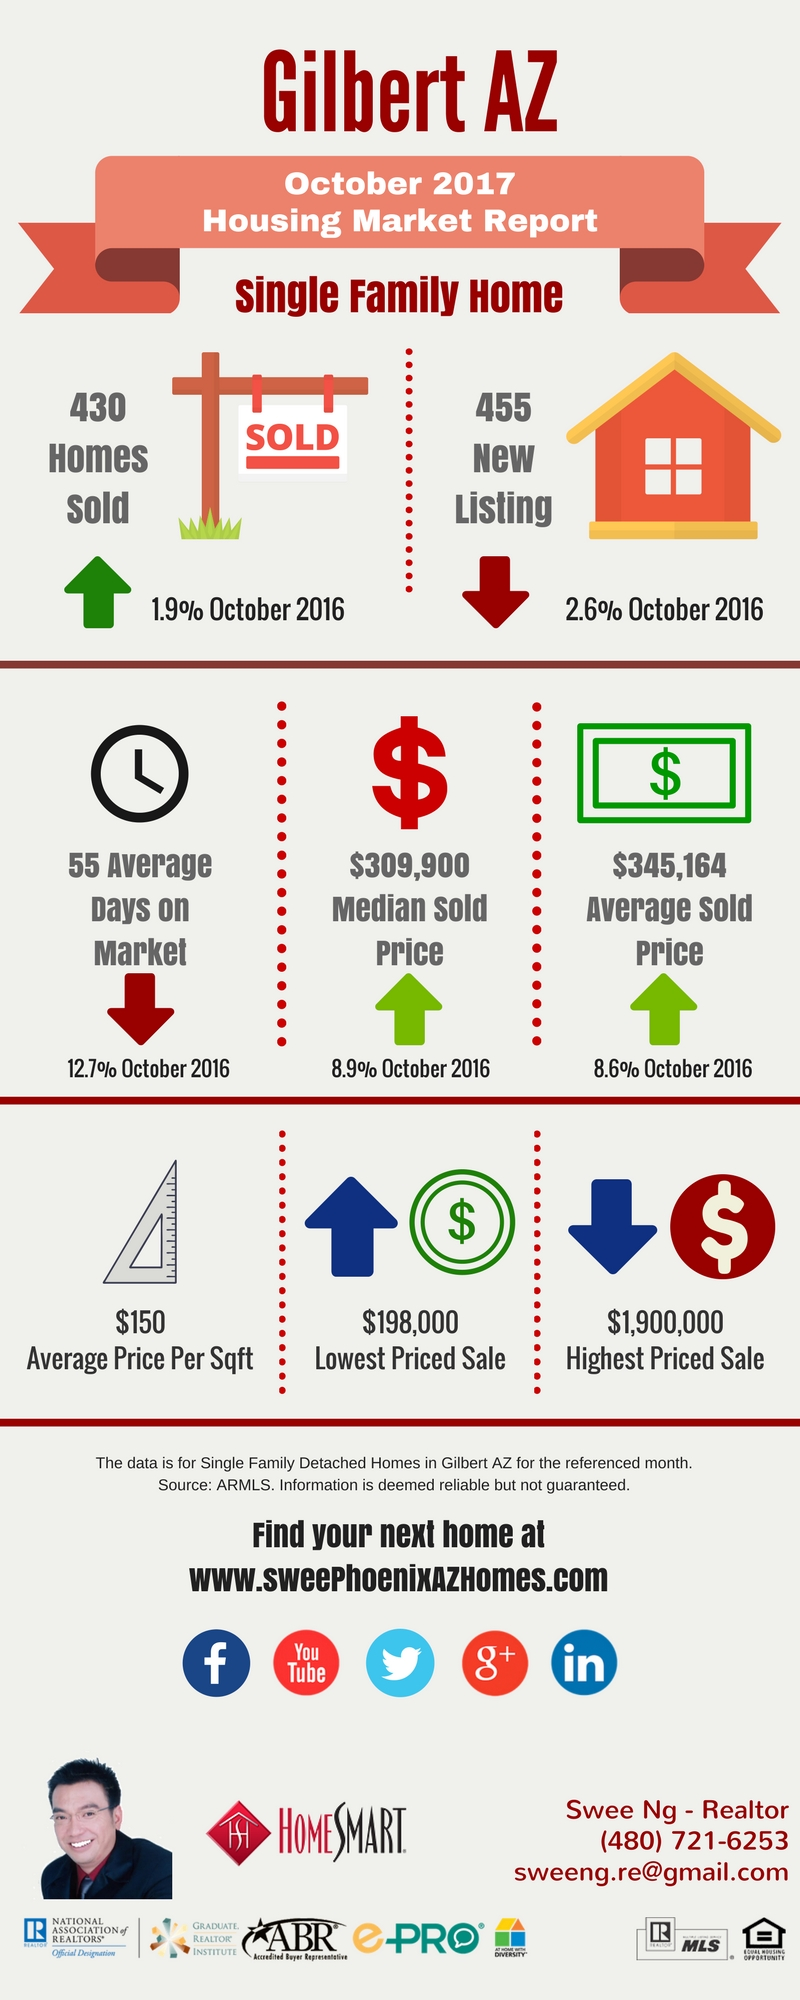 Gilbert AZ Housing Market Trends Report October 2017 by Swee Ng, Real Estate and House Value